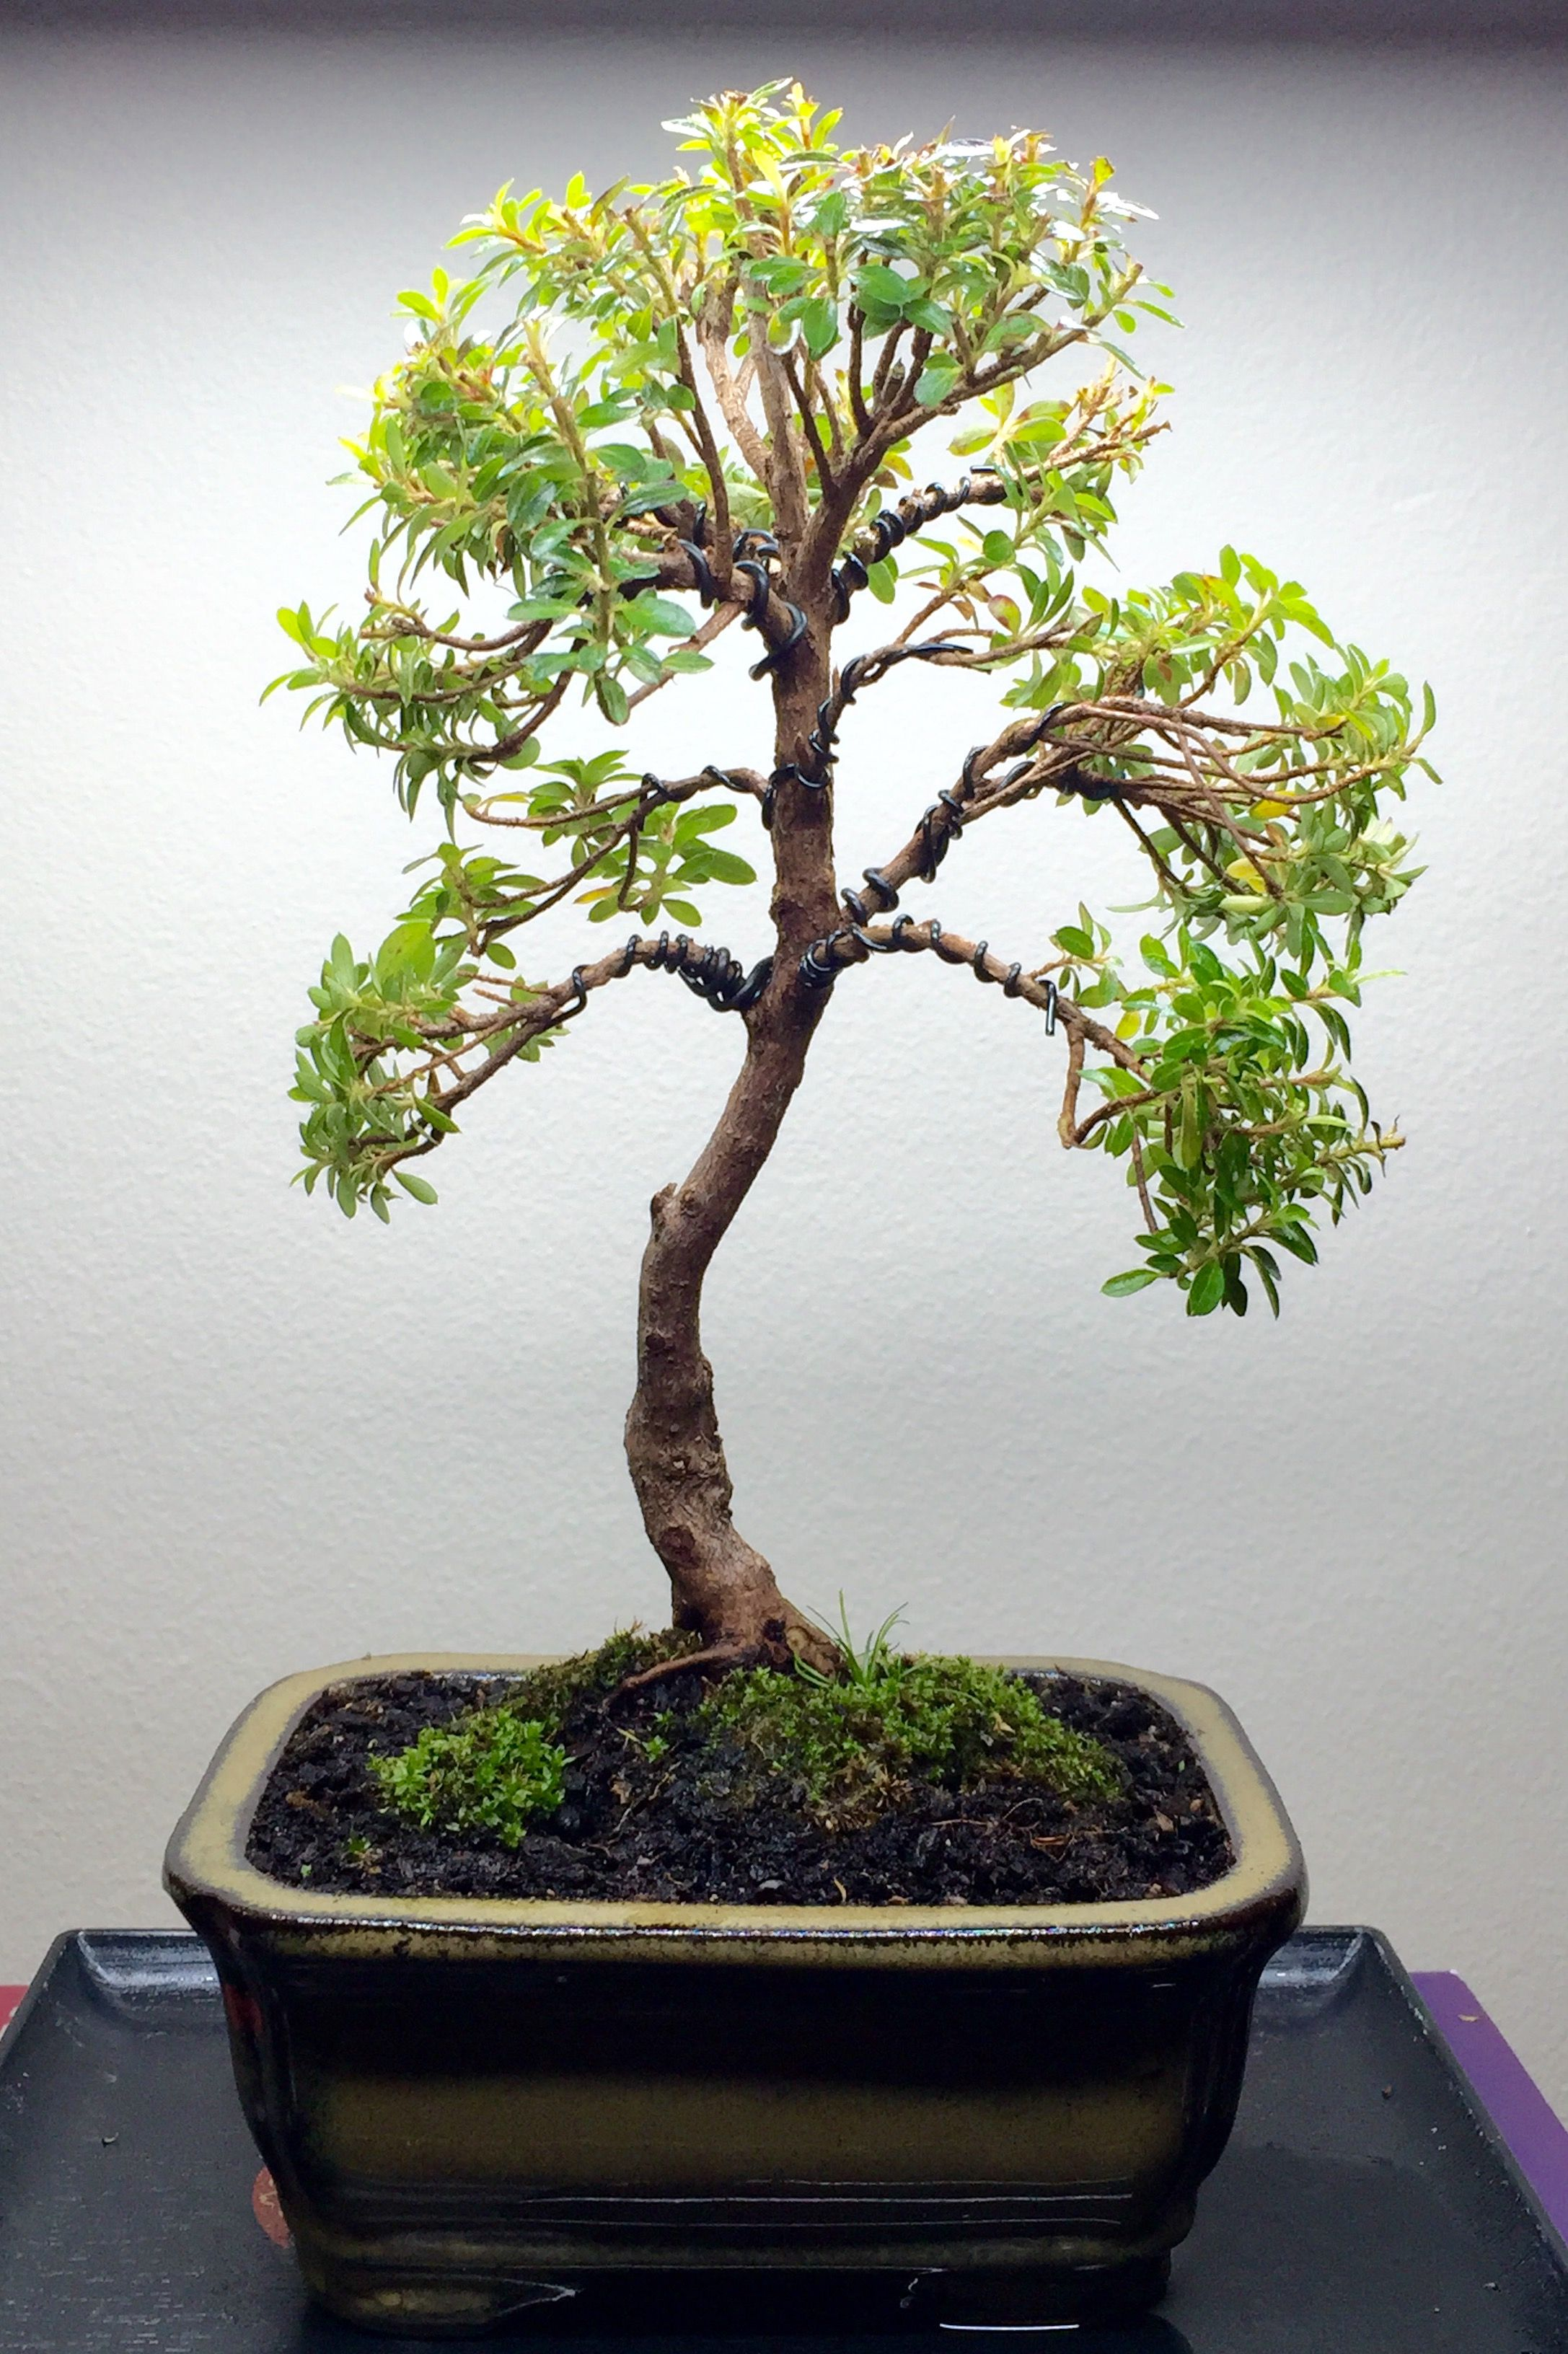 Azalea First Pruning Wiring And Re Potting Approximately 150mm Juniper Bonsai Tree High 03 06 2016 Gardening